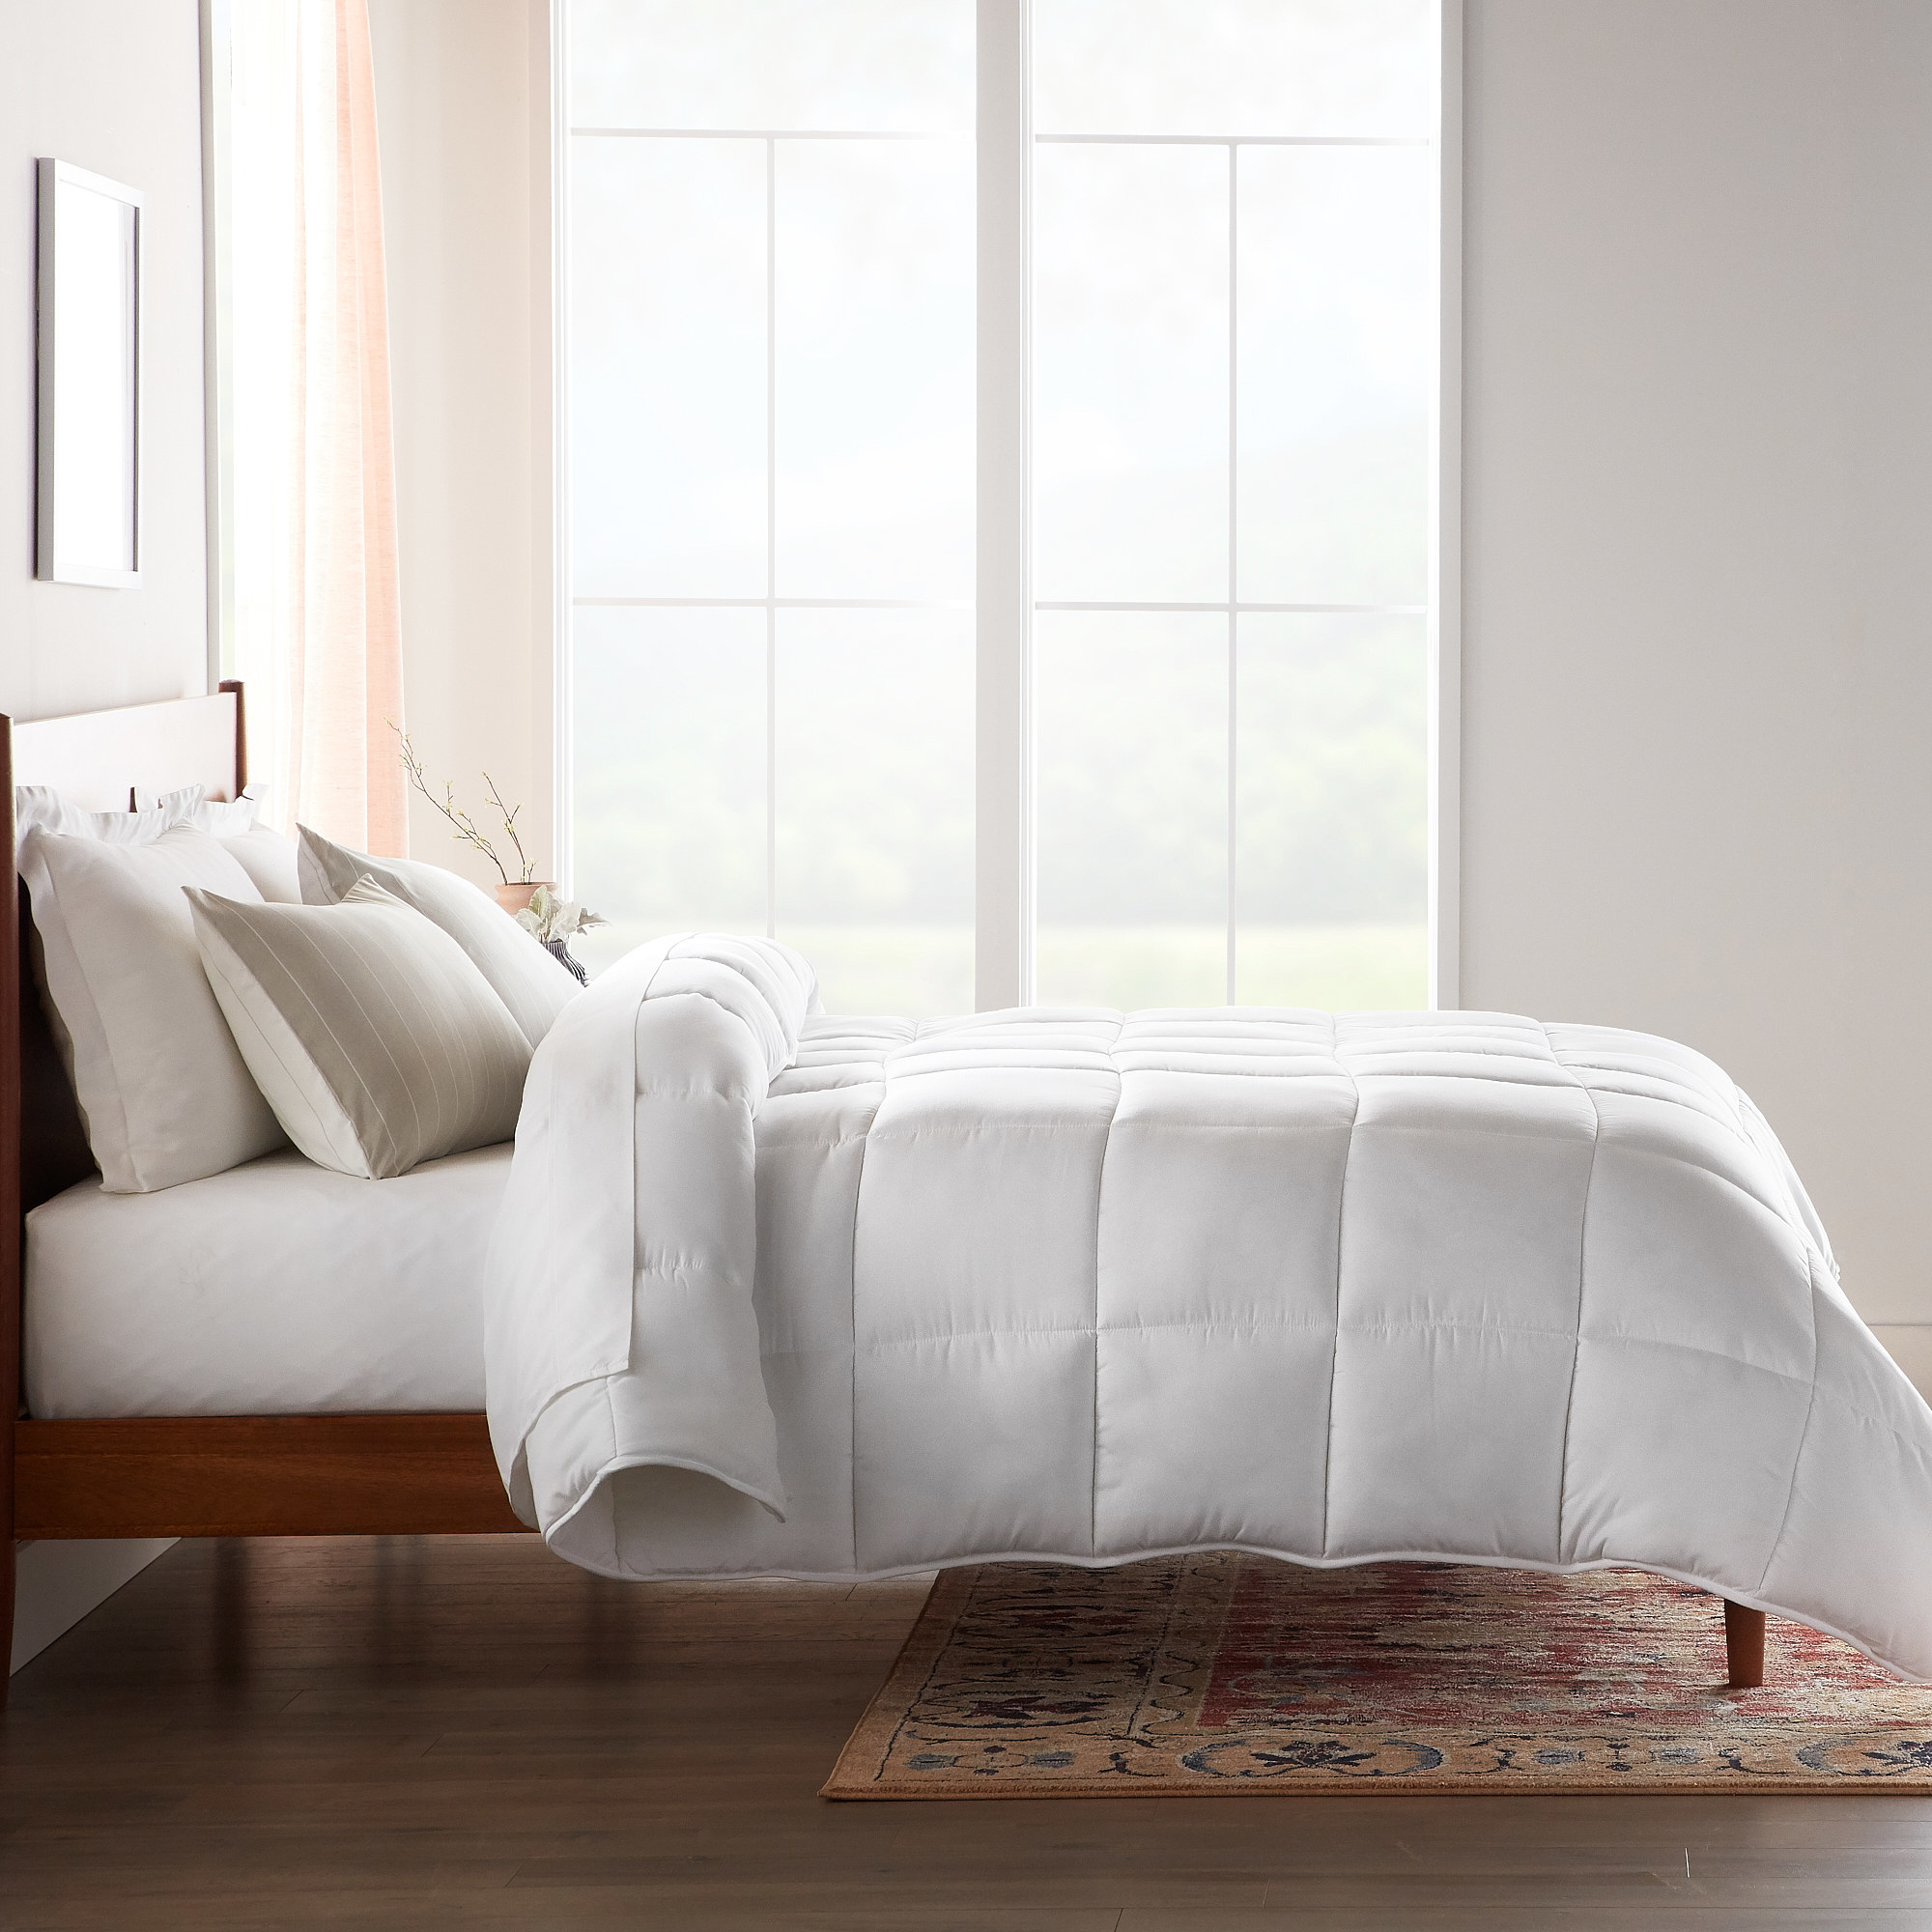 A quilted white comforter atop a bed